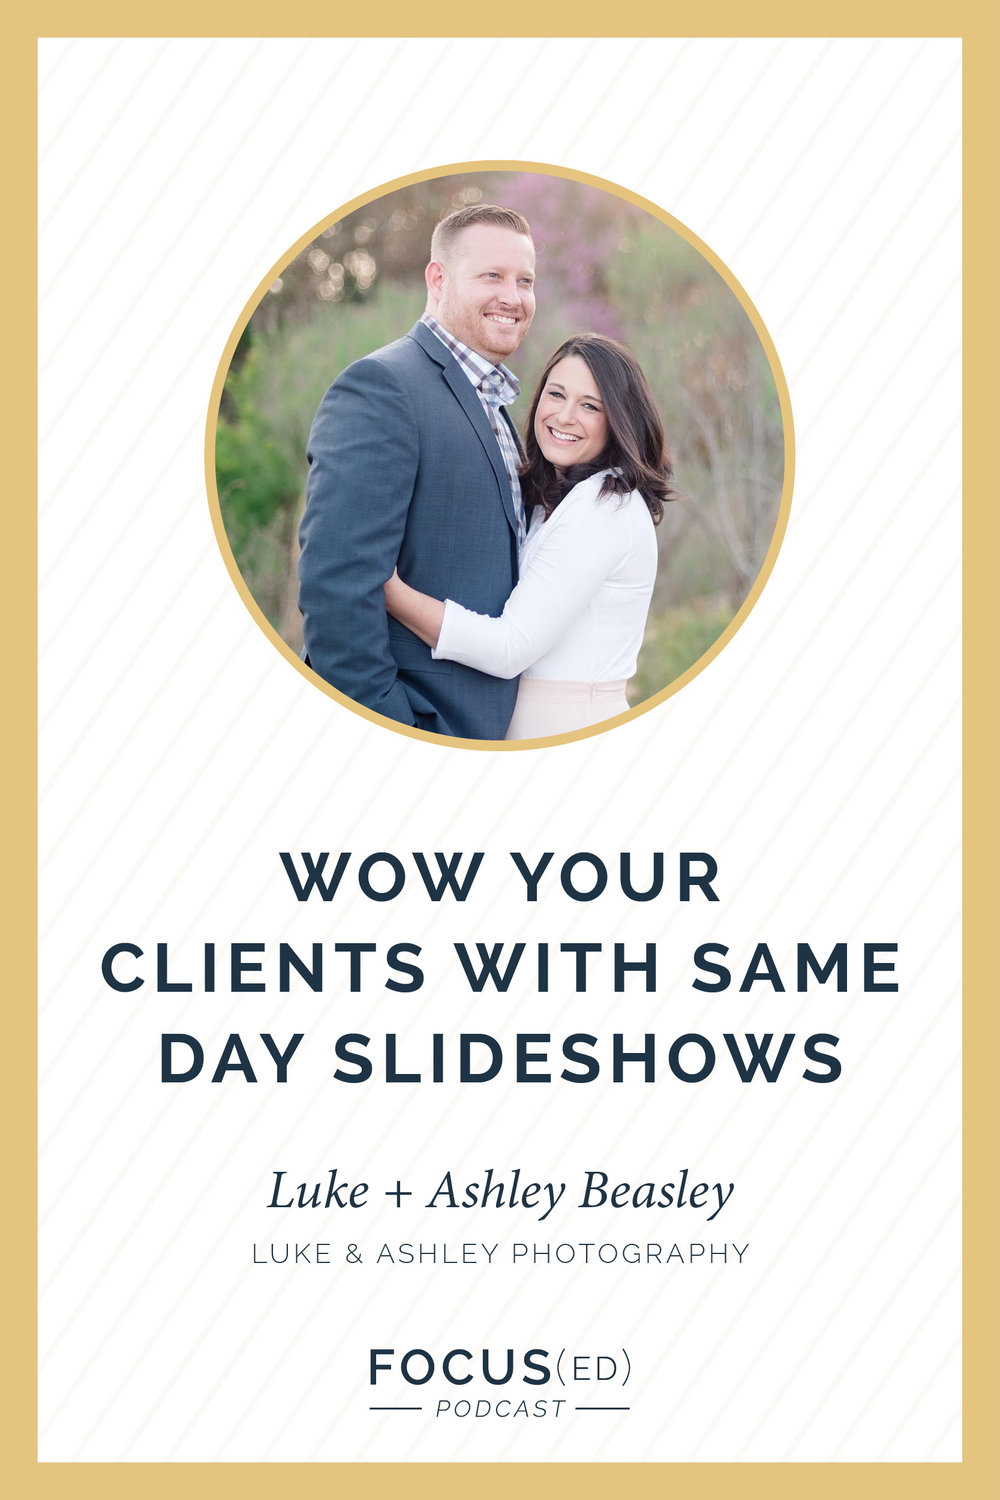 You're couples don't know what they're missing out on. Same day slideshows with Luke & Ashley Photography |  Focus(ed) Podcast